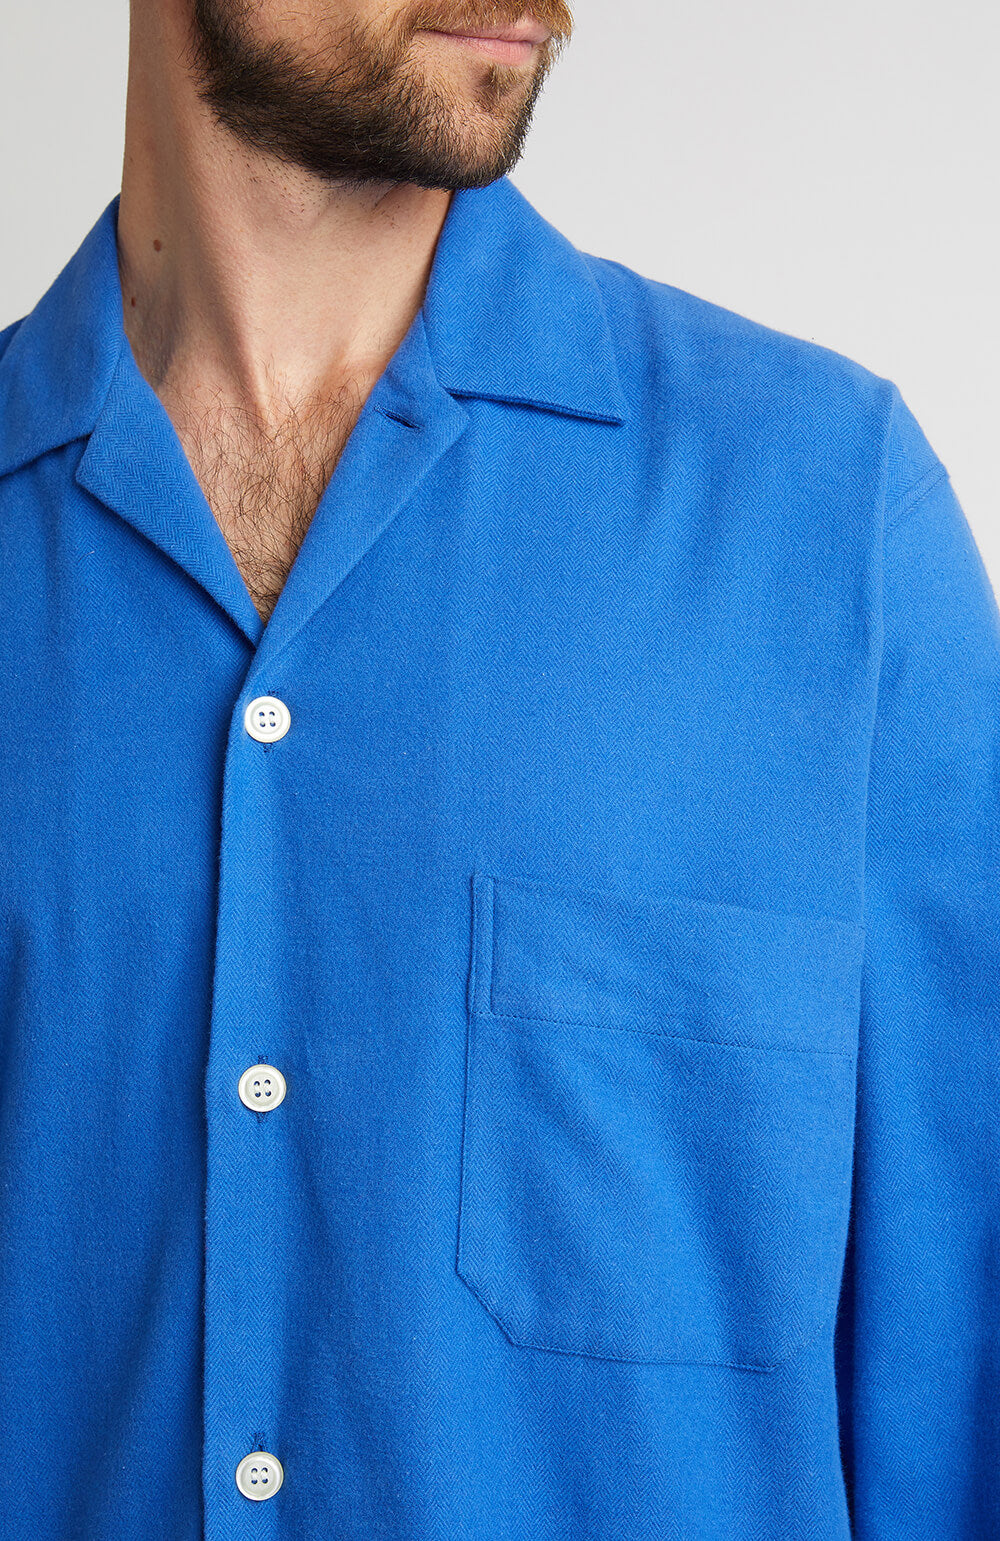 Brushed Cotton Pyjamas (jmpe) - Bright Blue | Bonsoir of London